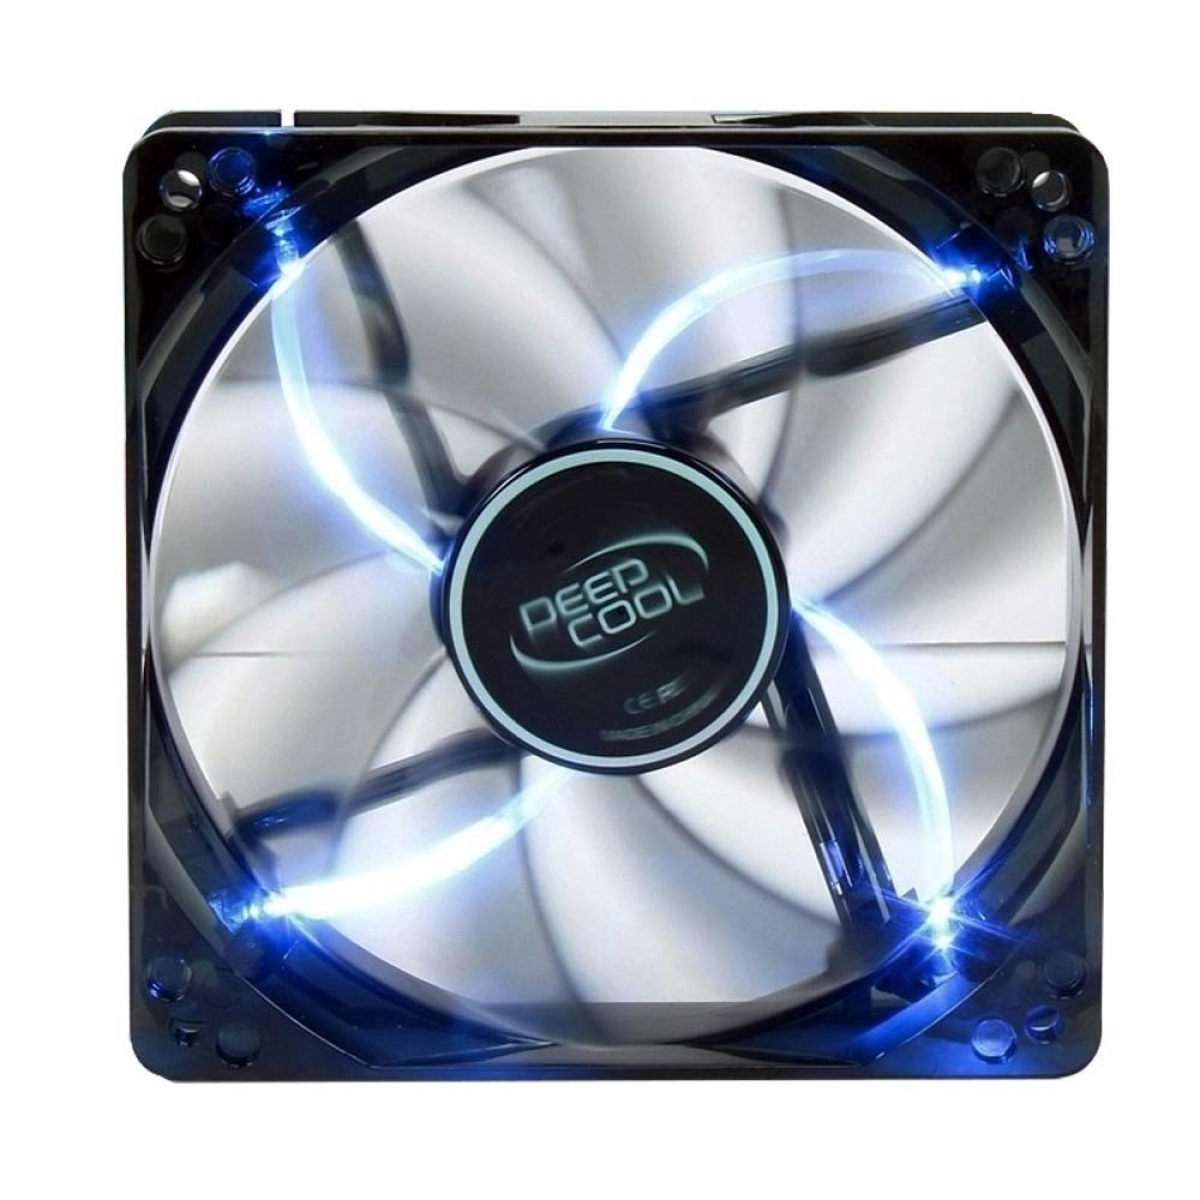 Cooler para Gabinete Deepcool Wind Blade, LED Blue 120mm, DP-FLED-WB120